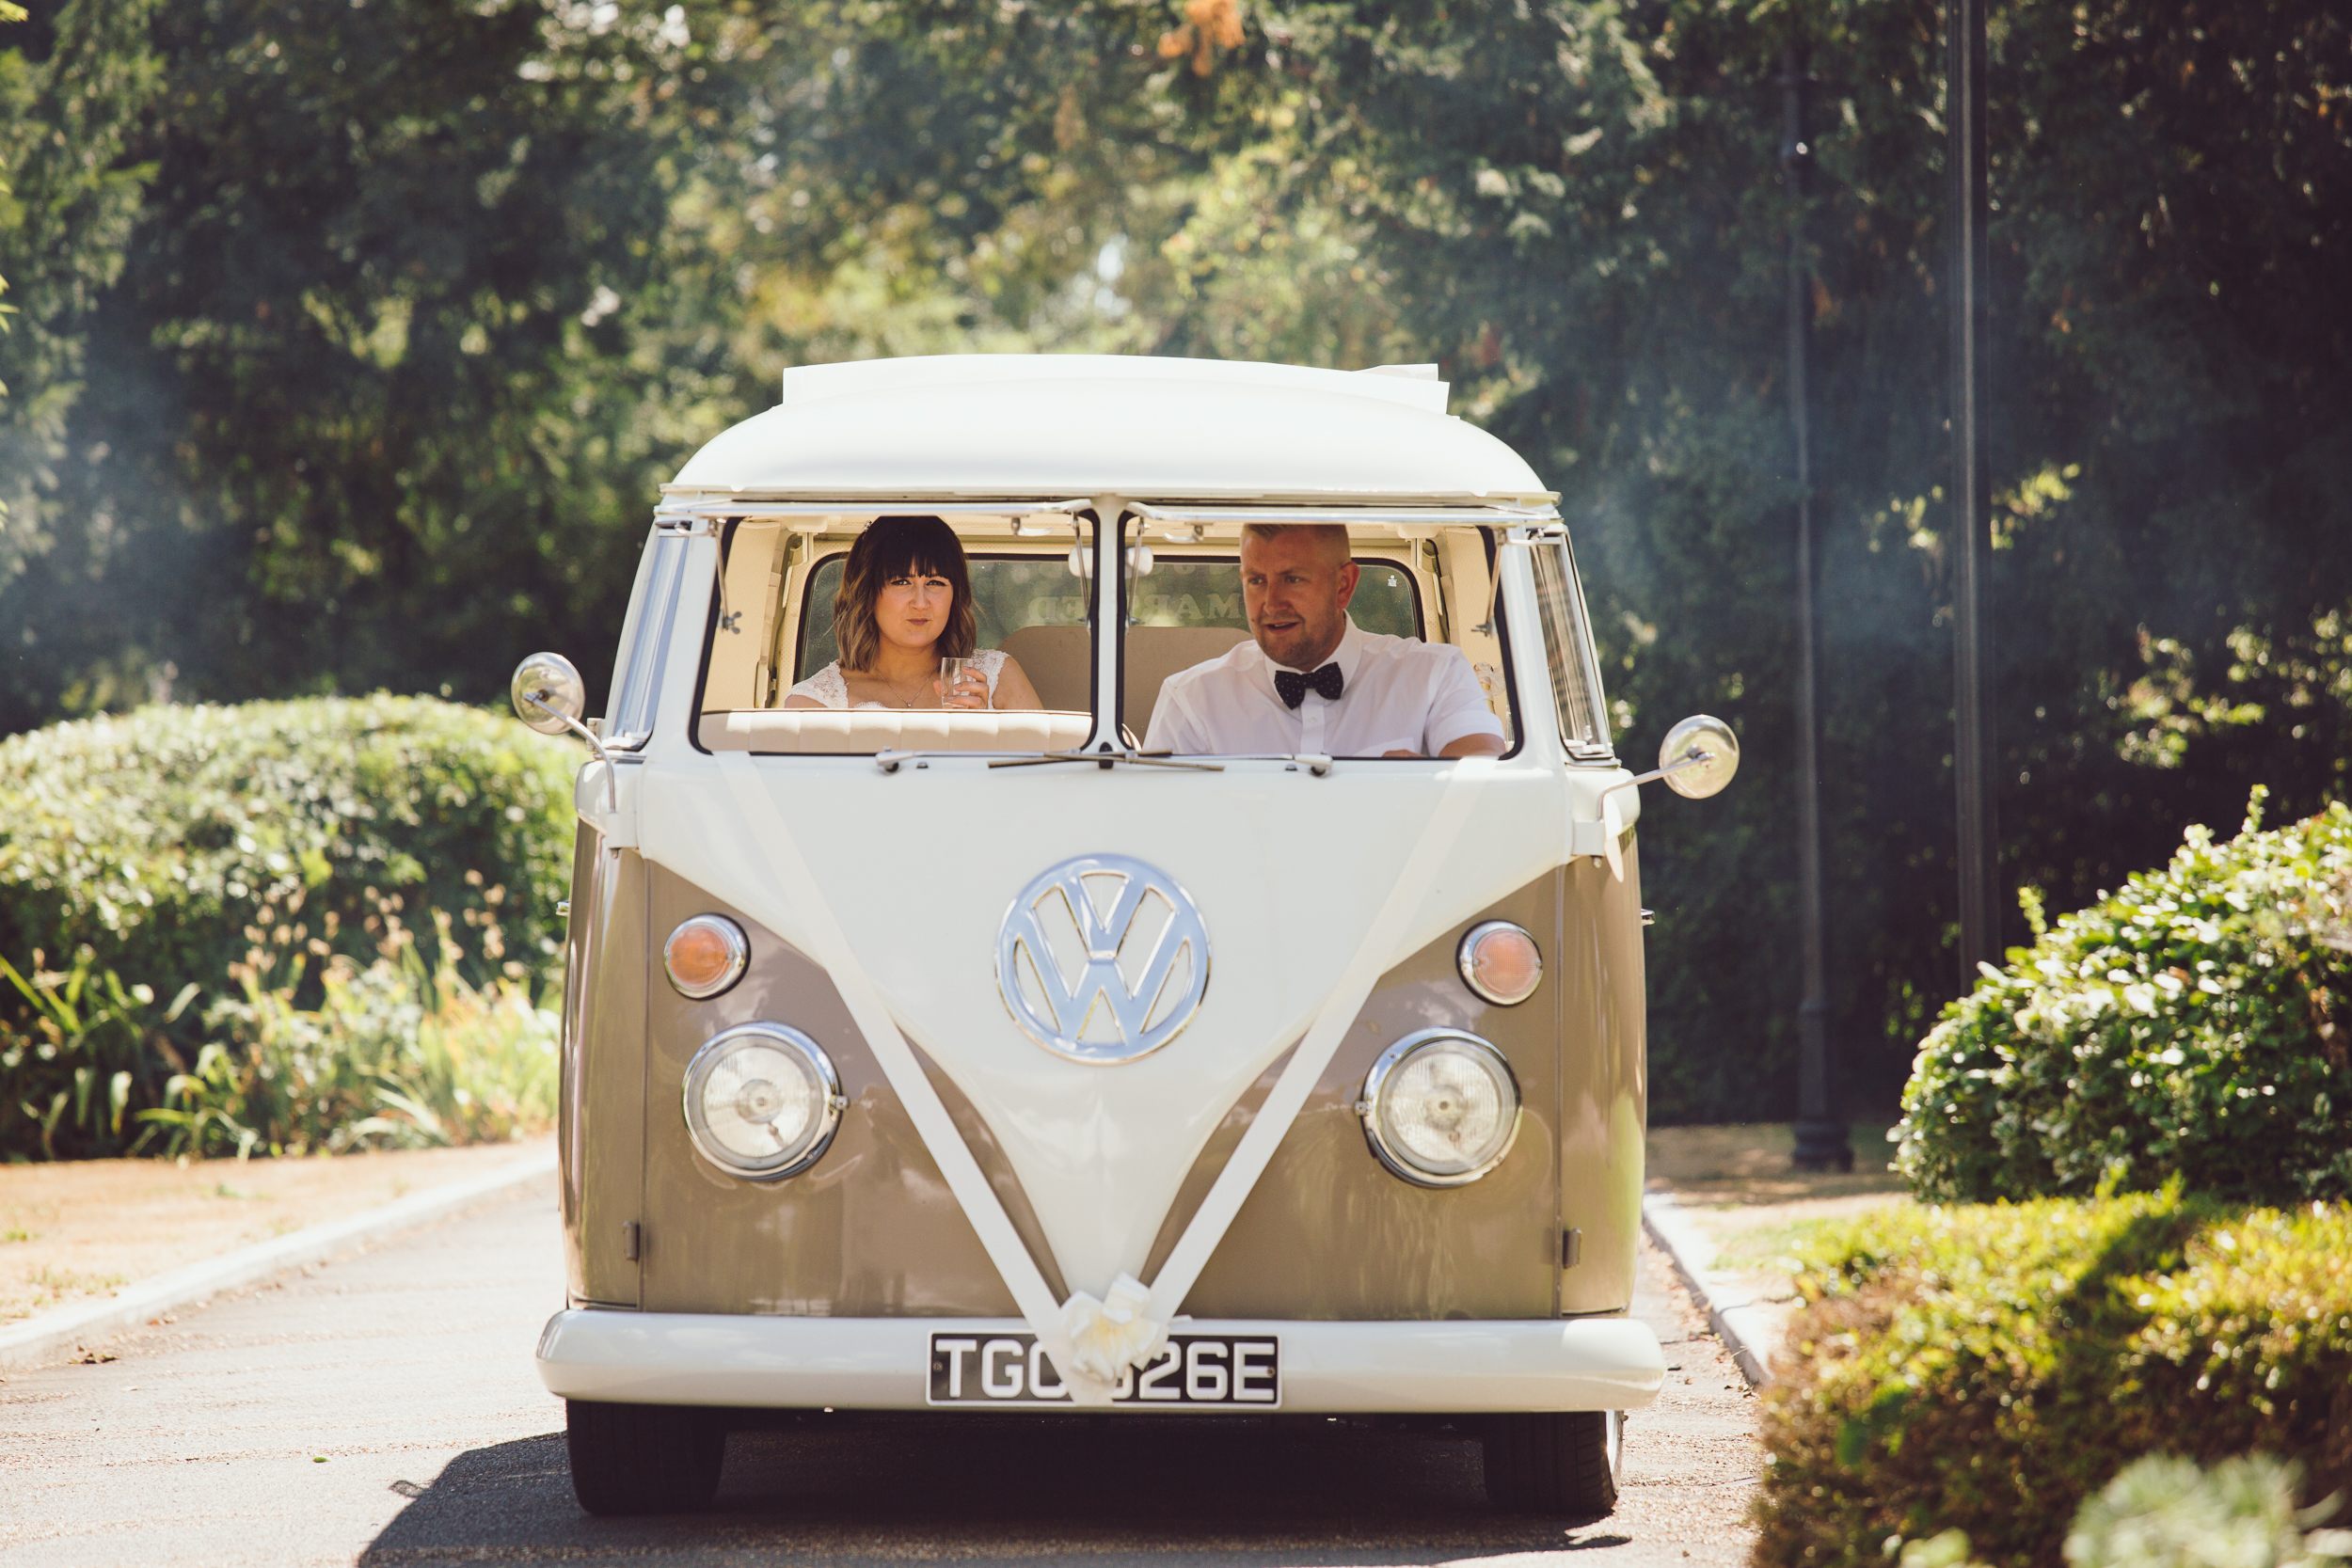 Helen arriving in style at the barns hotel Bedfordshire, moment captured by wedding photographer Richard Puncheon